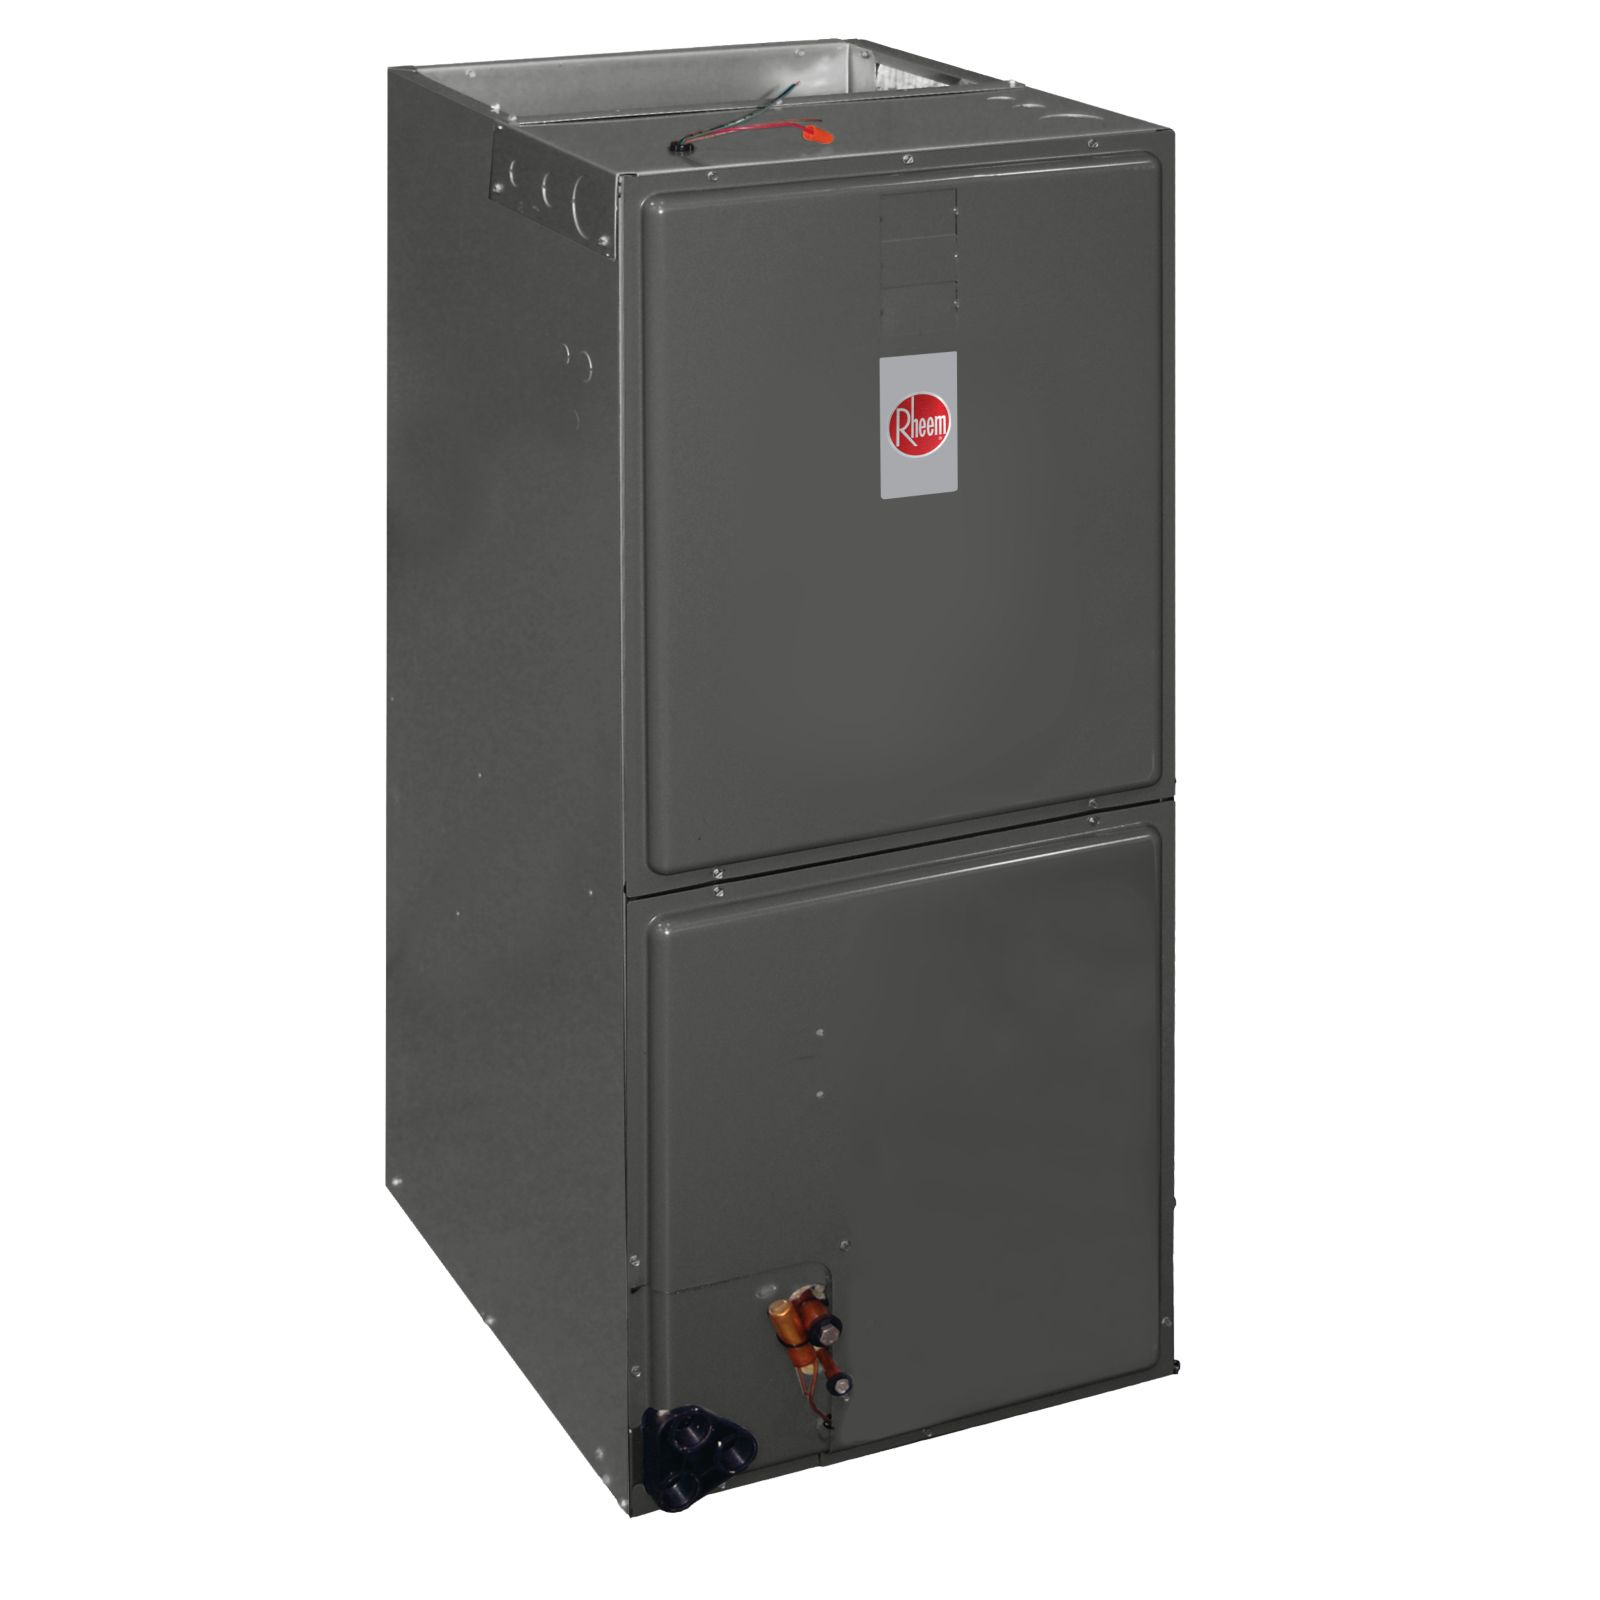 Rheem RHSL-HM1817JA - RHSL Series 1 1/2 Ton Multiposition Standard Efficiency Air Handler - 13 SEER - R410A - PCS Motor